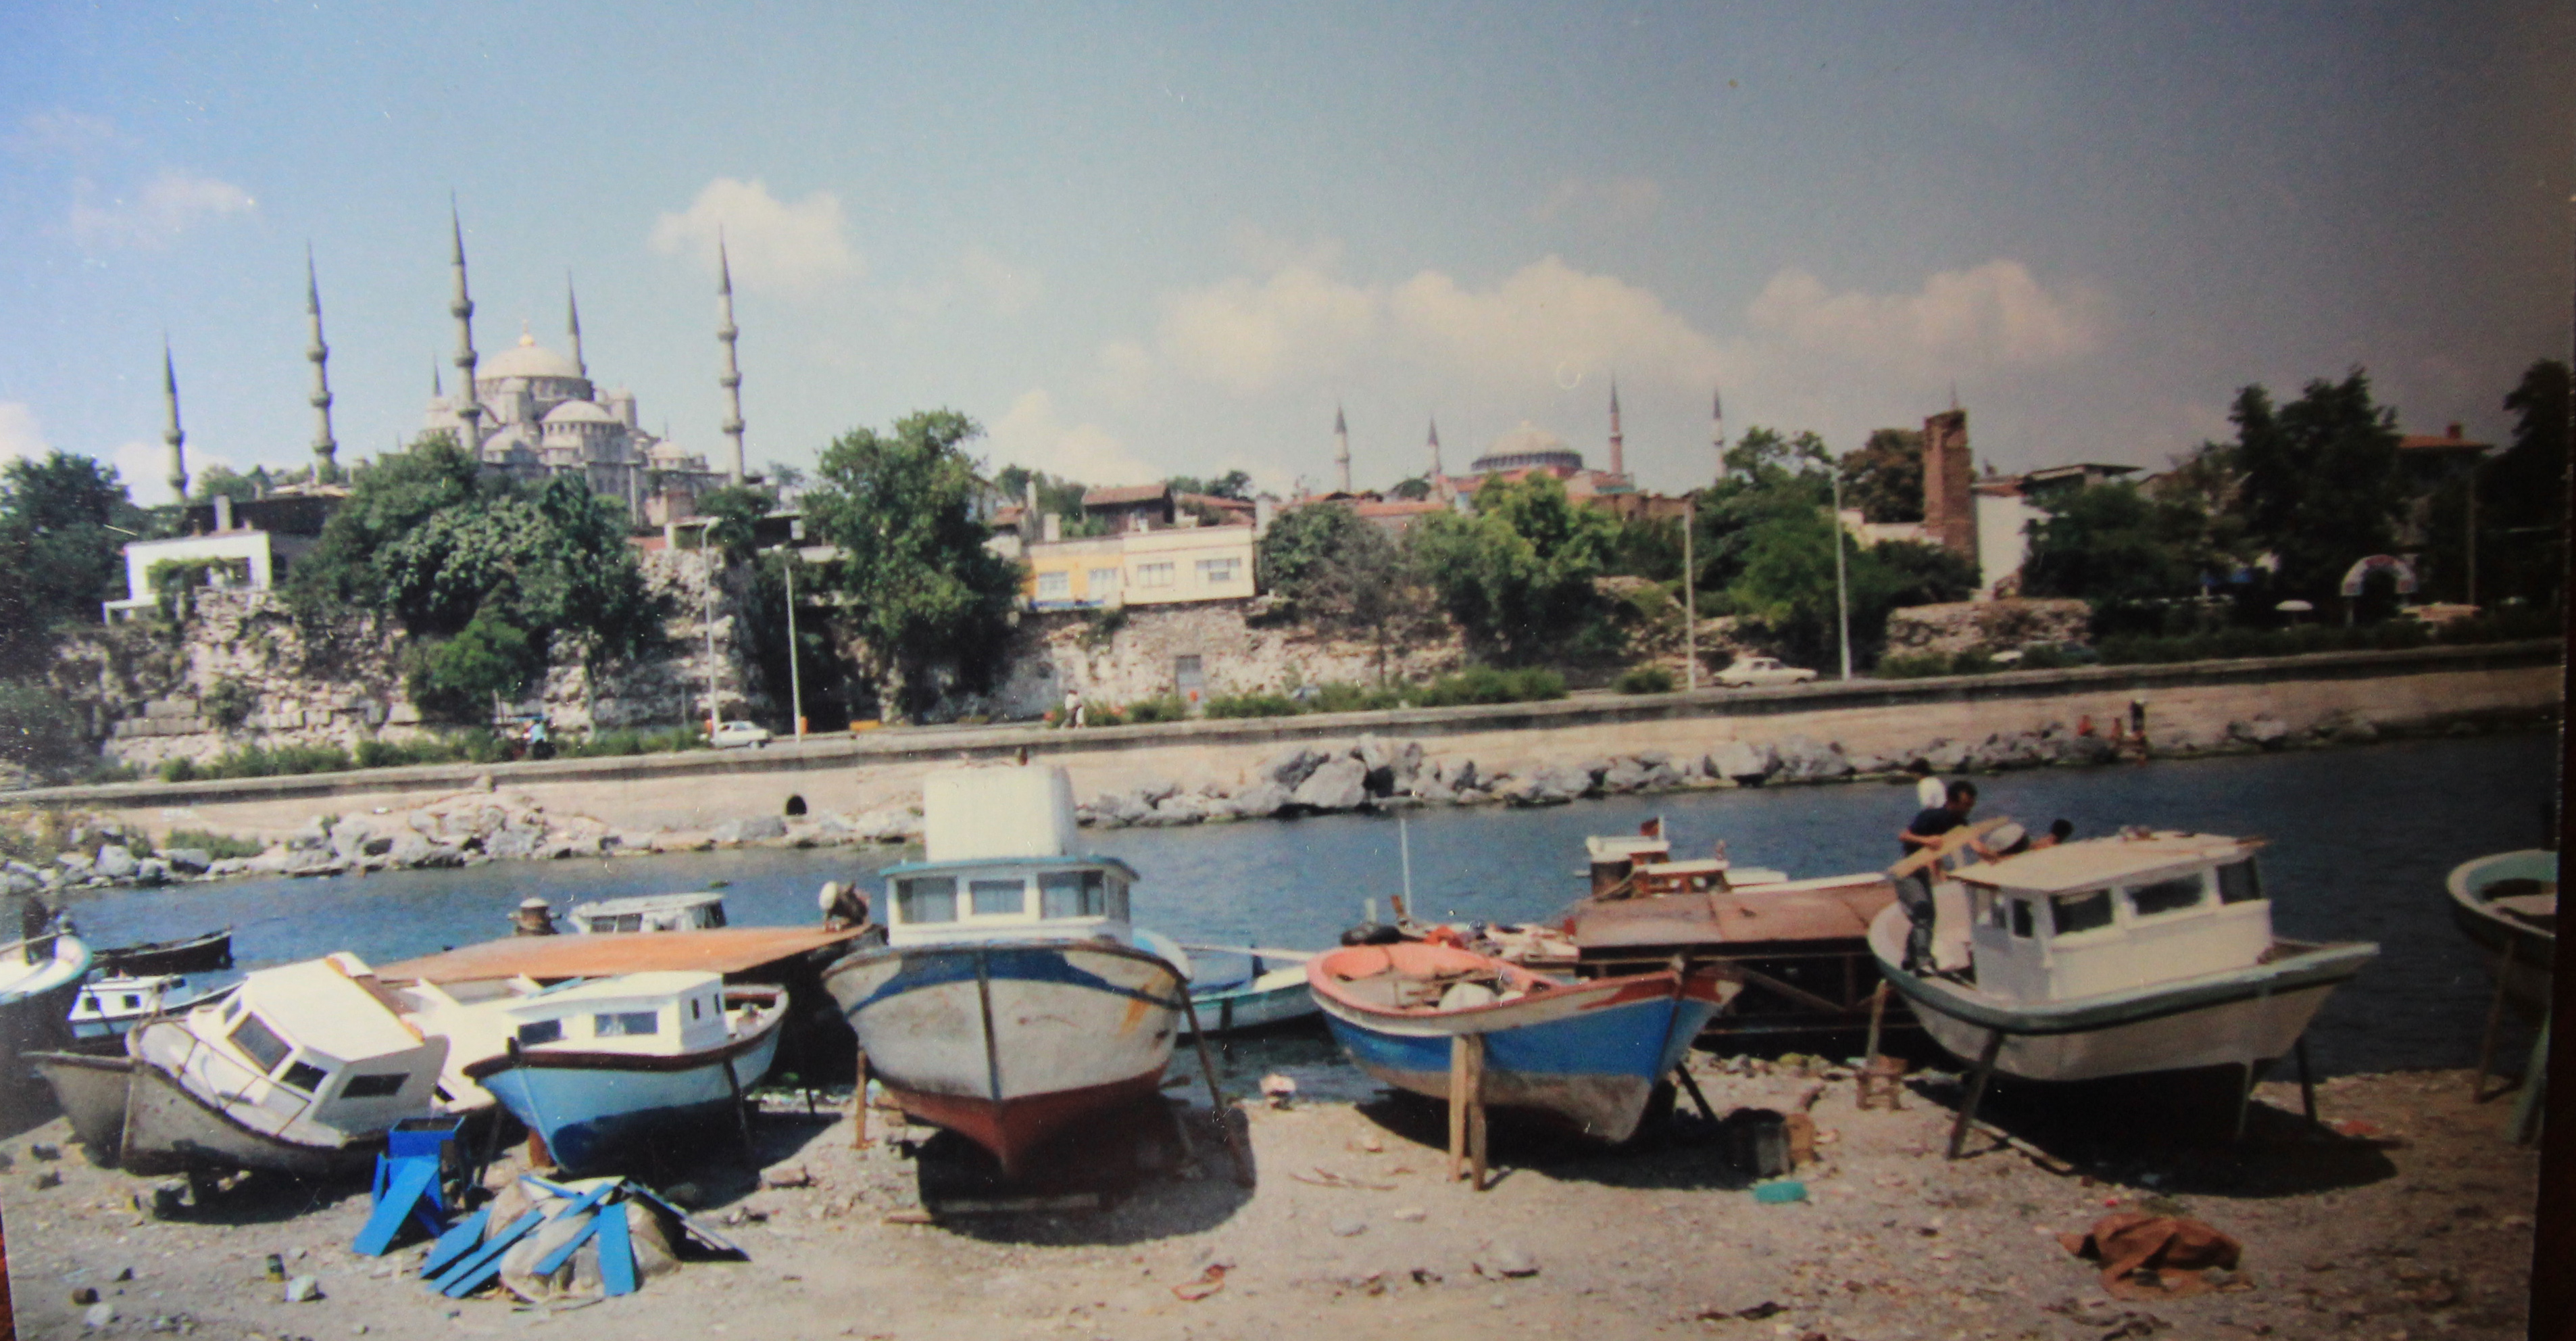 Istanbul with boats